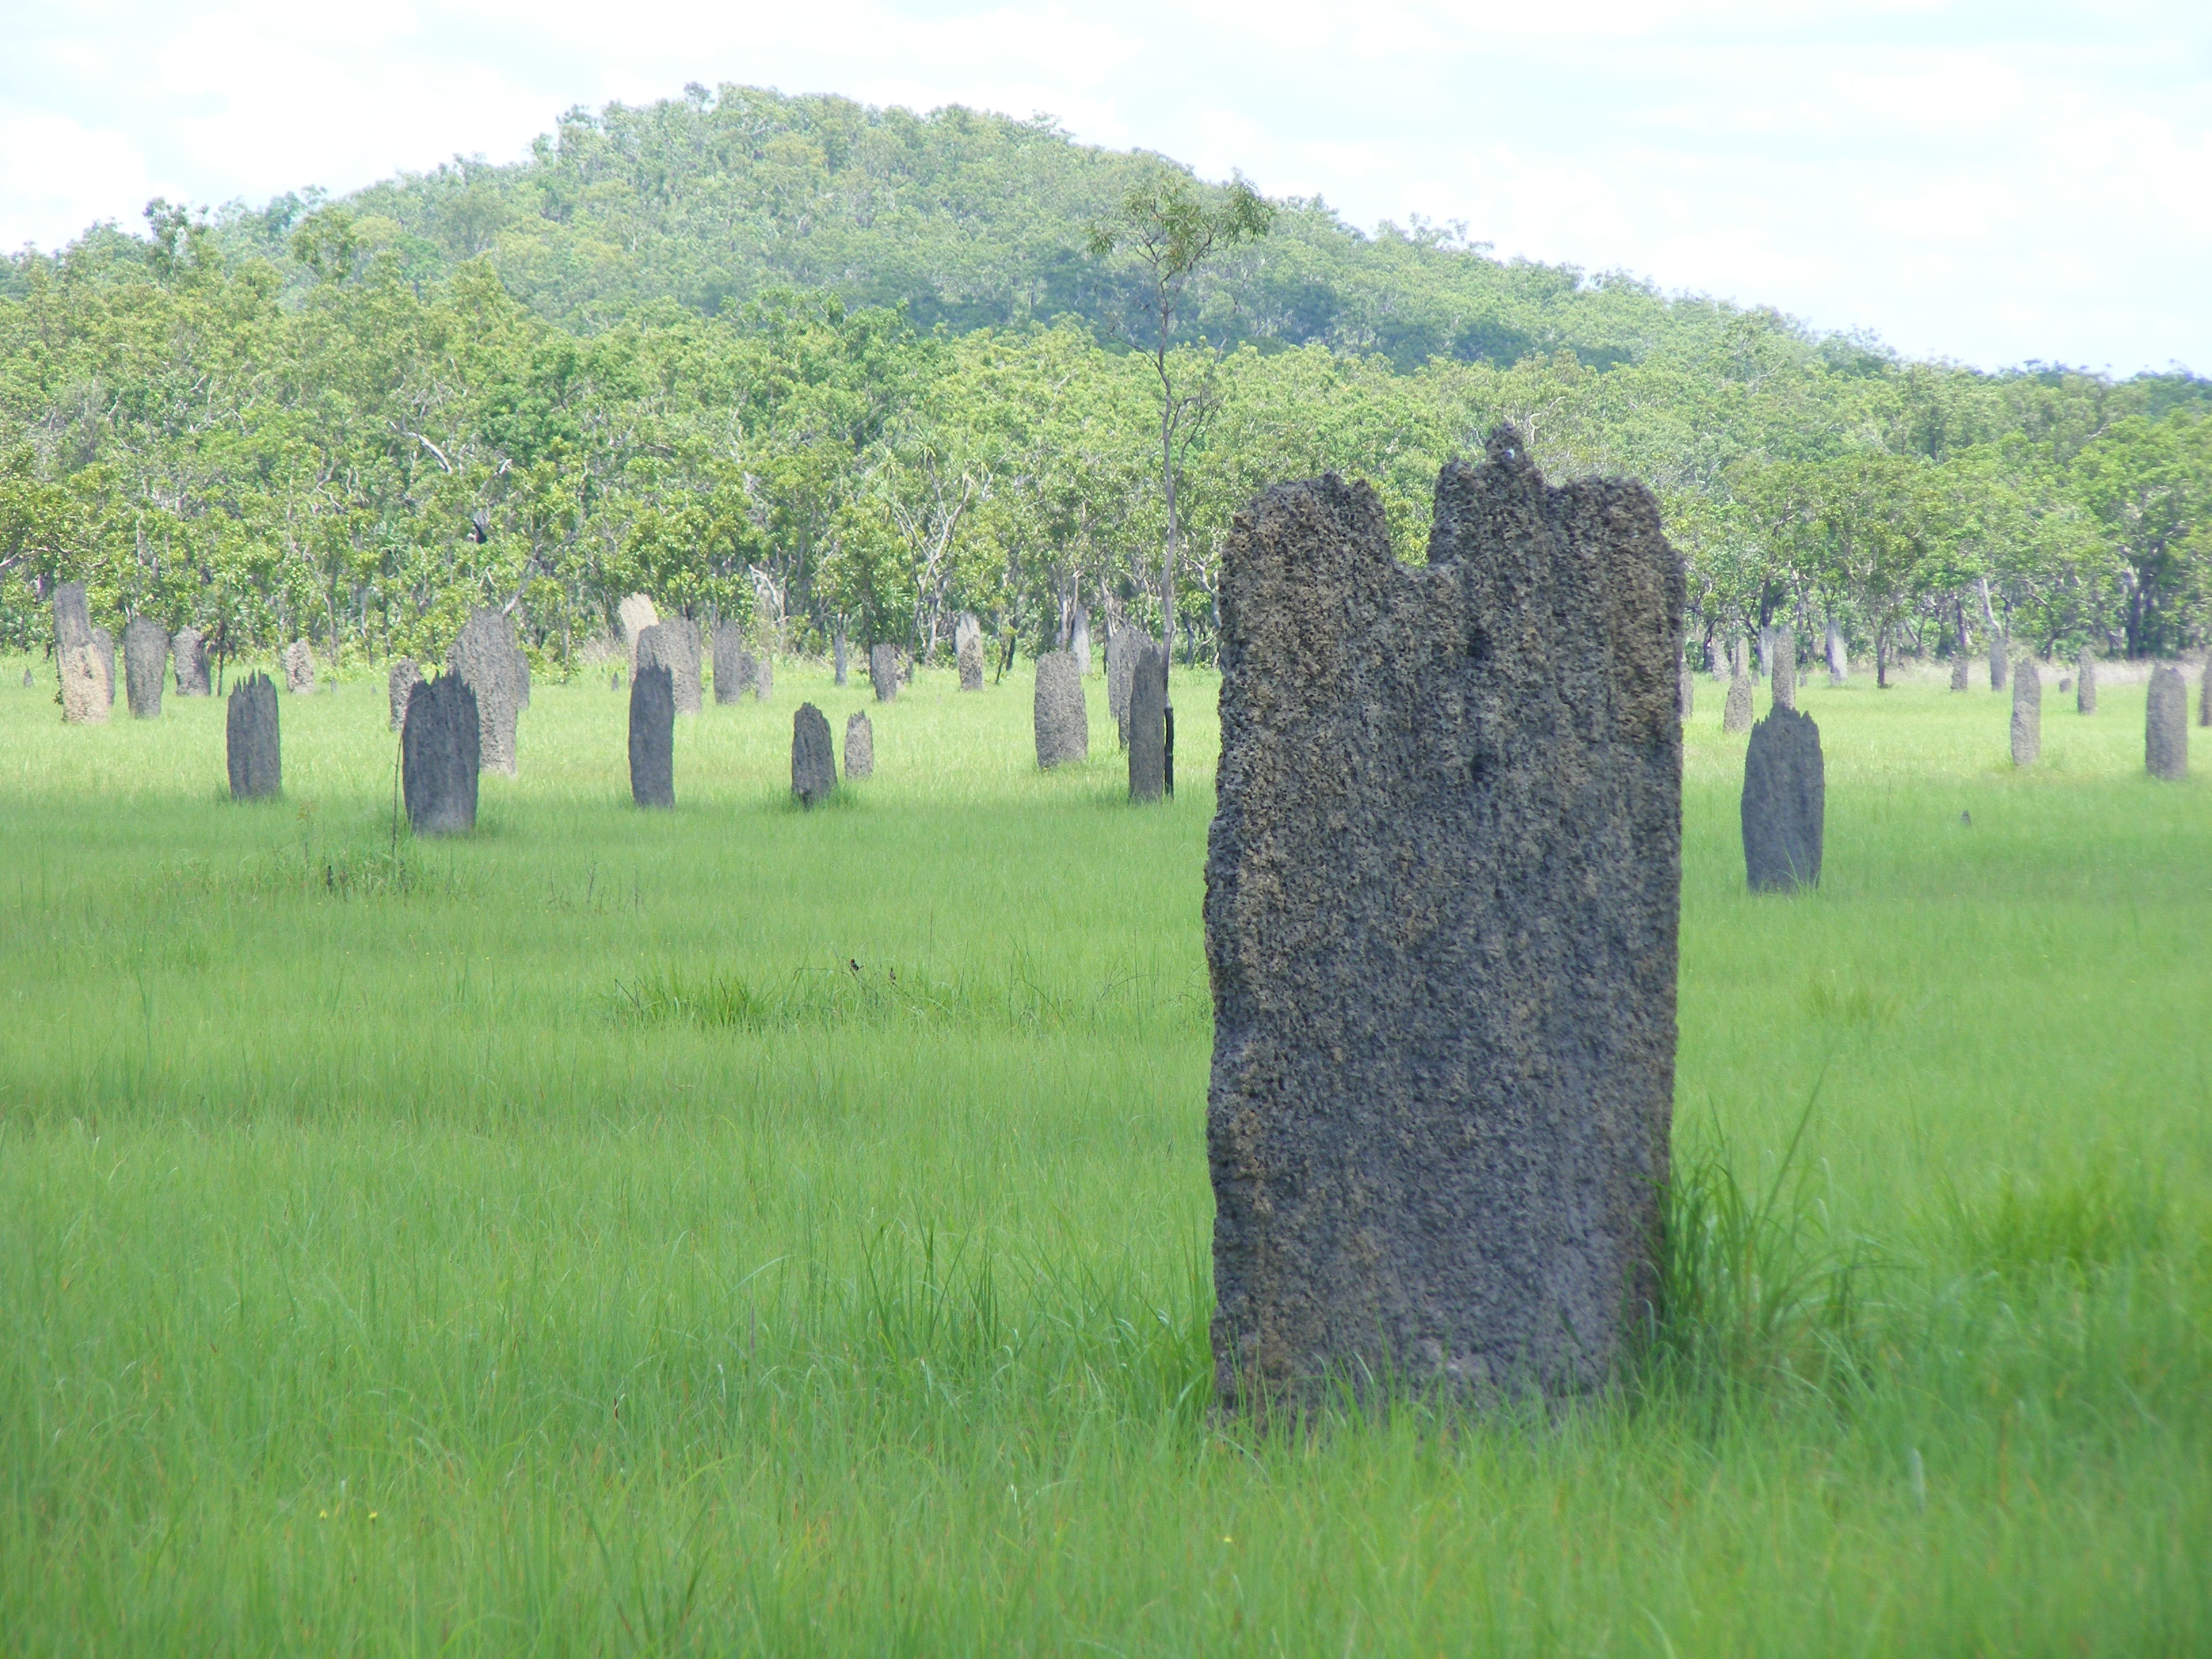 Magnetic Termite Mounds Litchfield National Park, Magnetic Termite mounds Litchfield NT | Robbie's Travel Blog